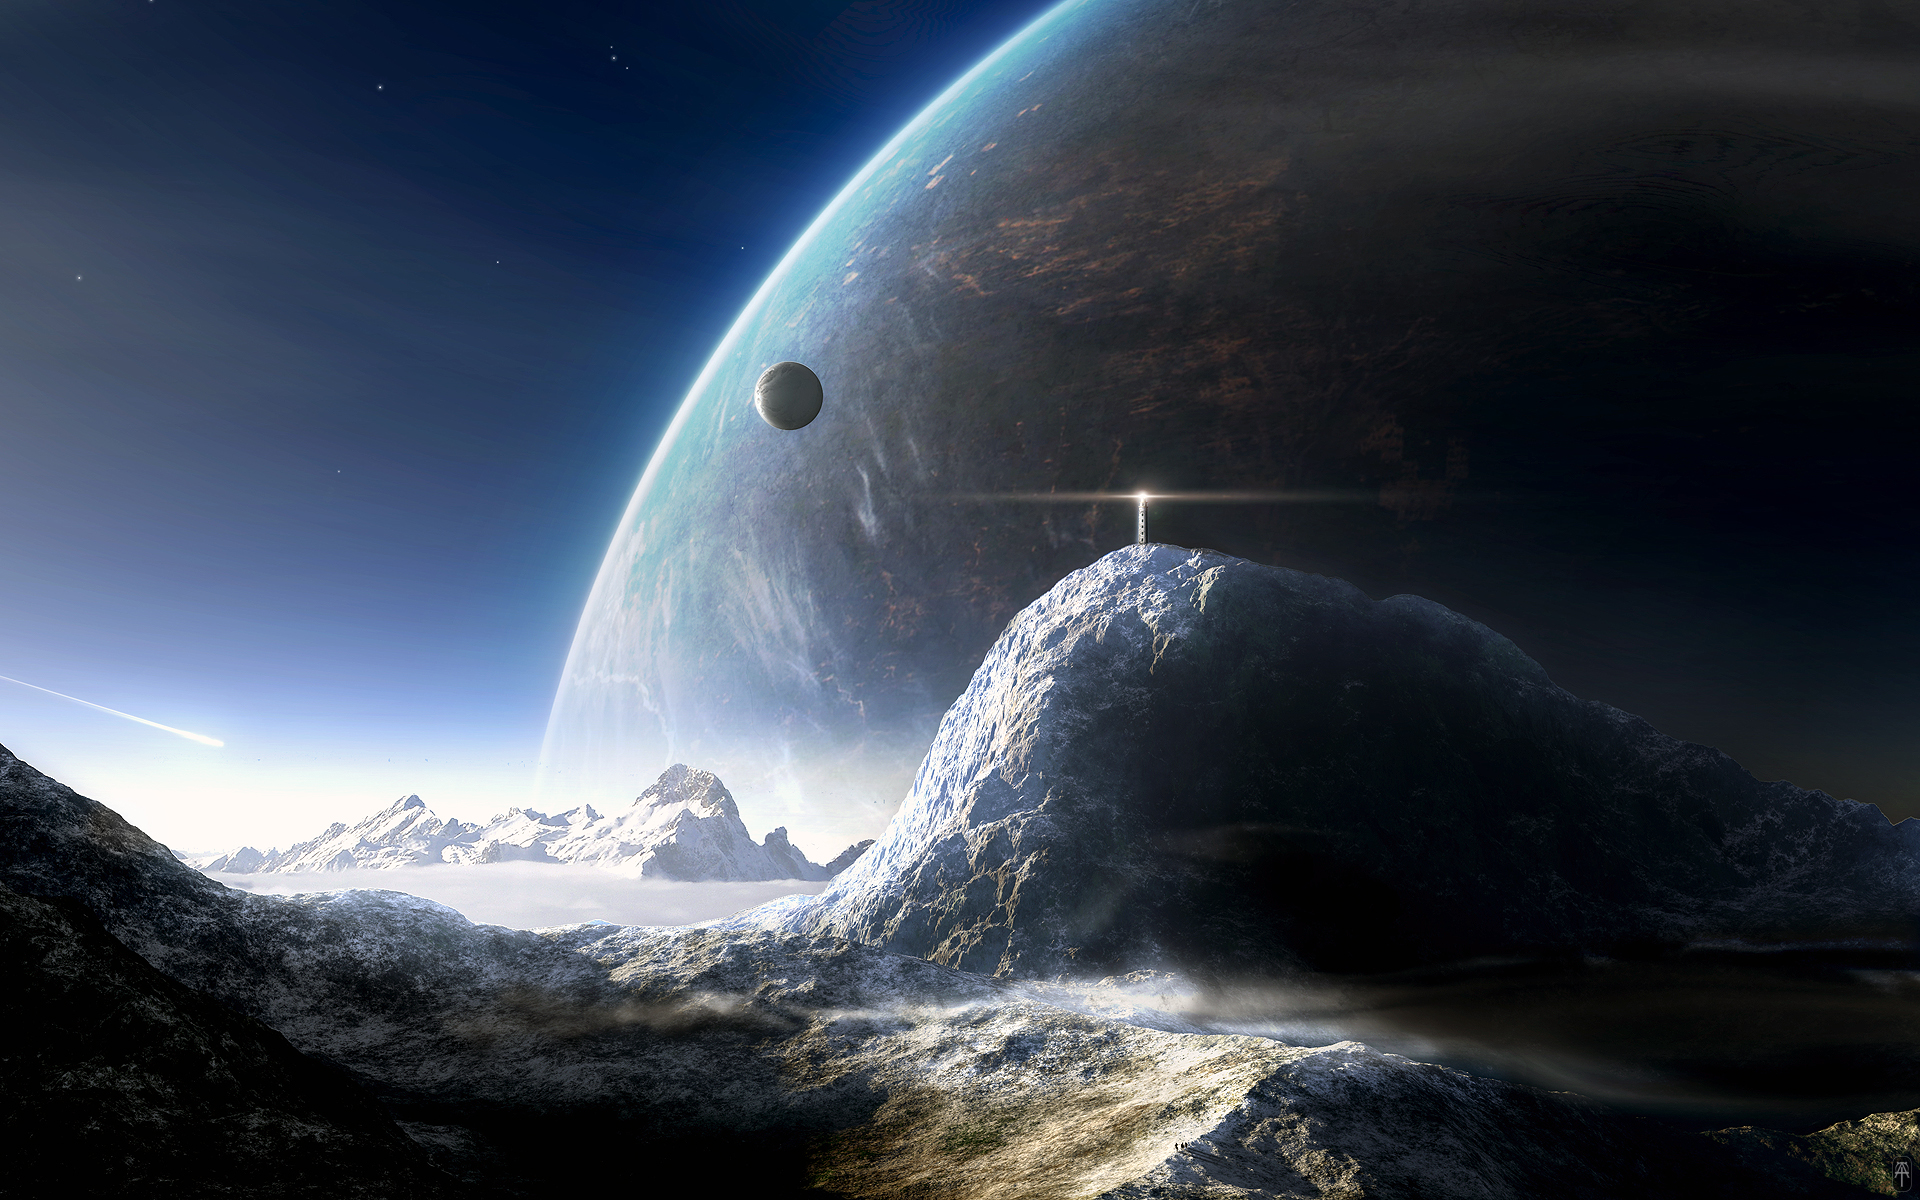 download space screensavers 21704 1920x1200 px high definition